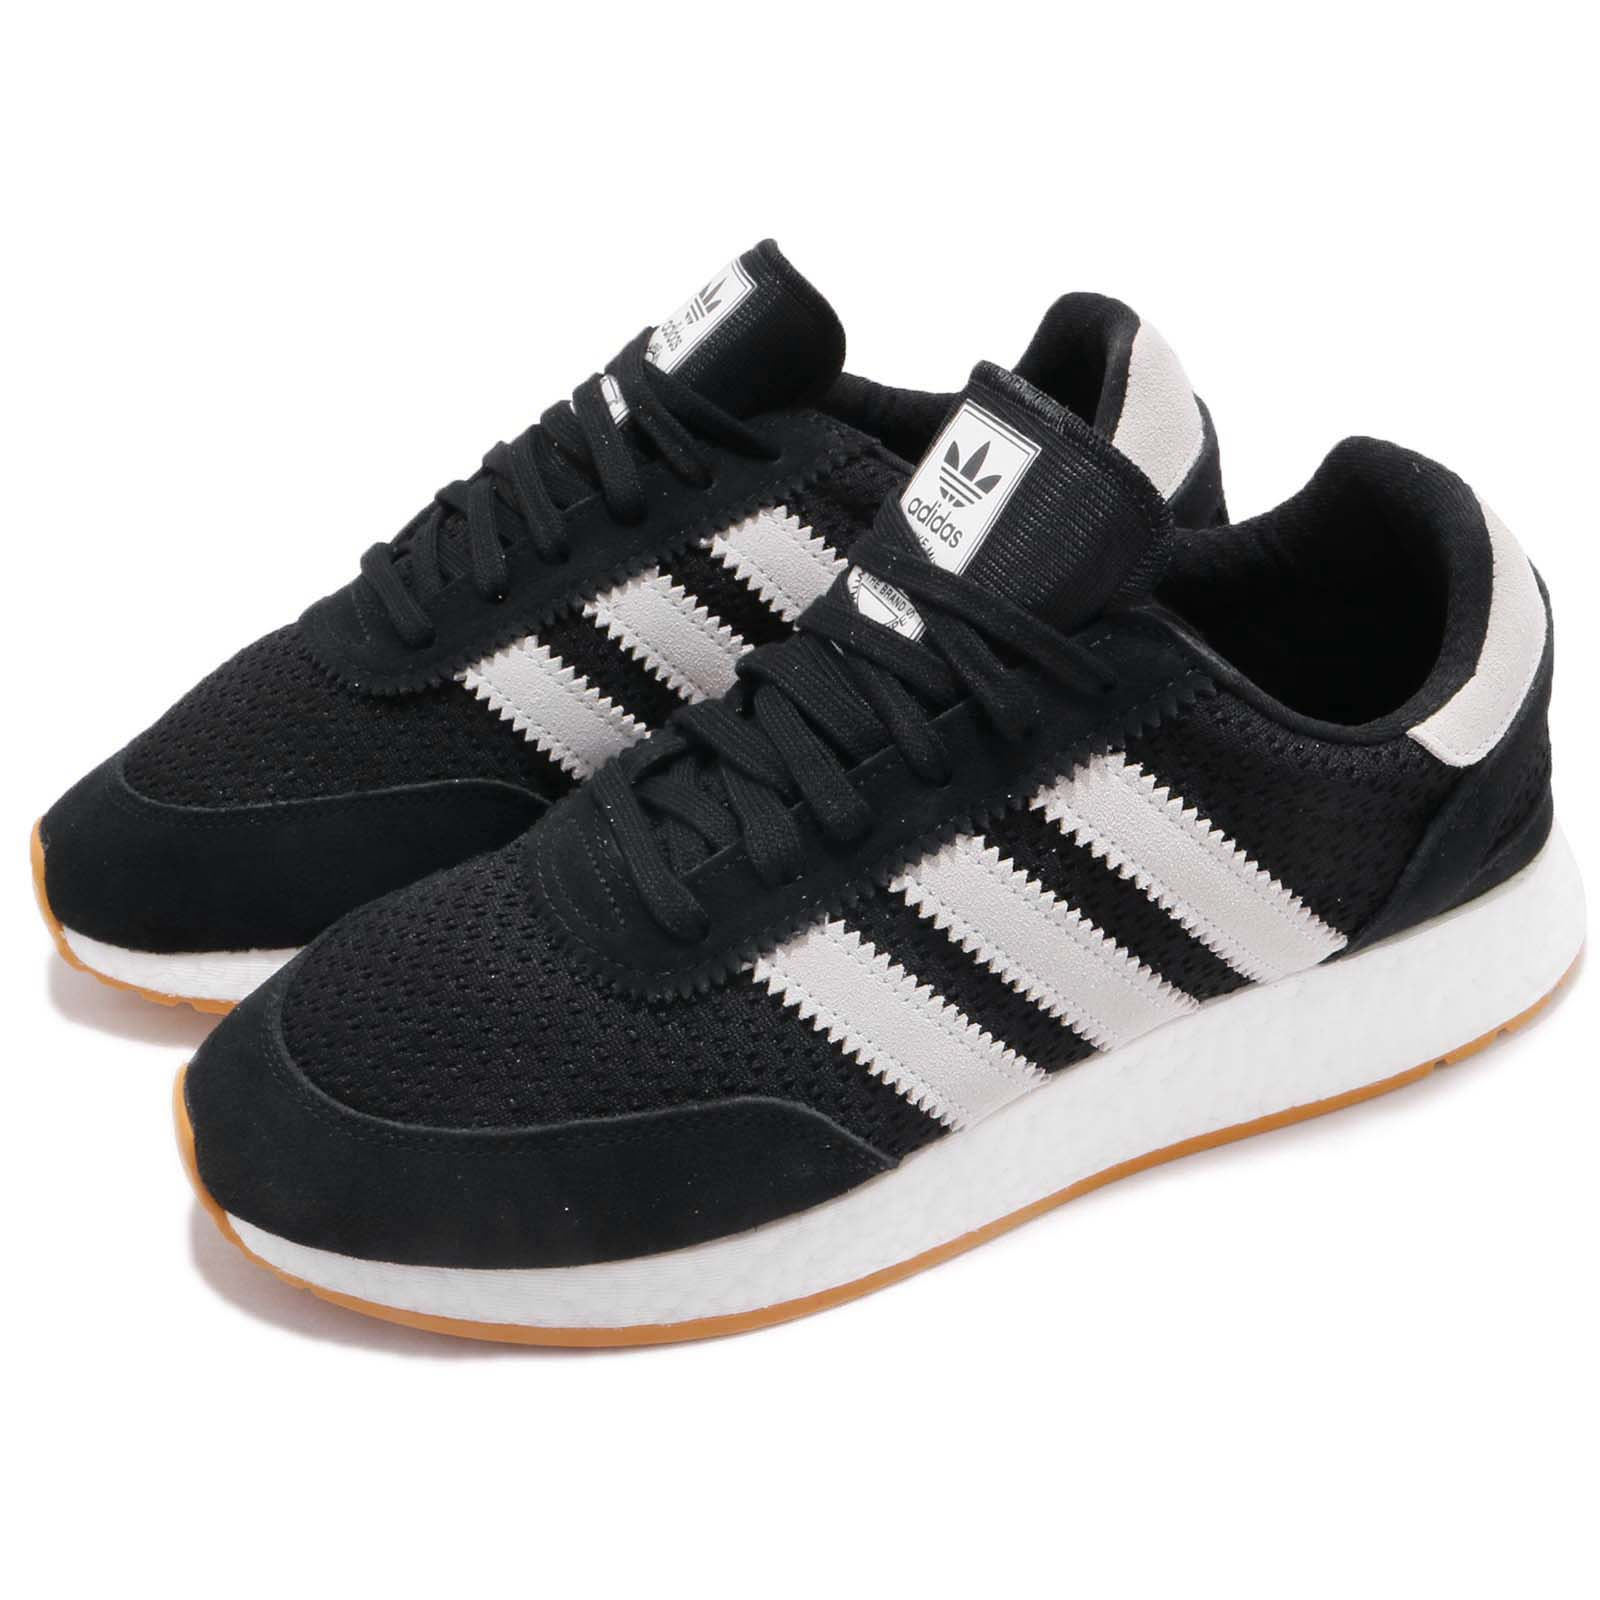 8501279811f2c Details about adidas Originals I-5923 Iniki Runner Black White Gum Men  Running Shoes D97213